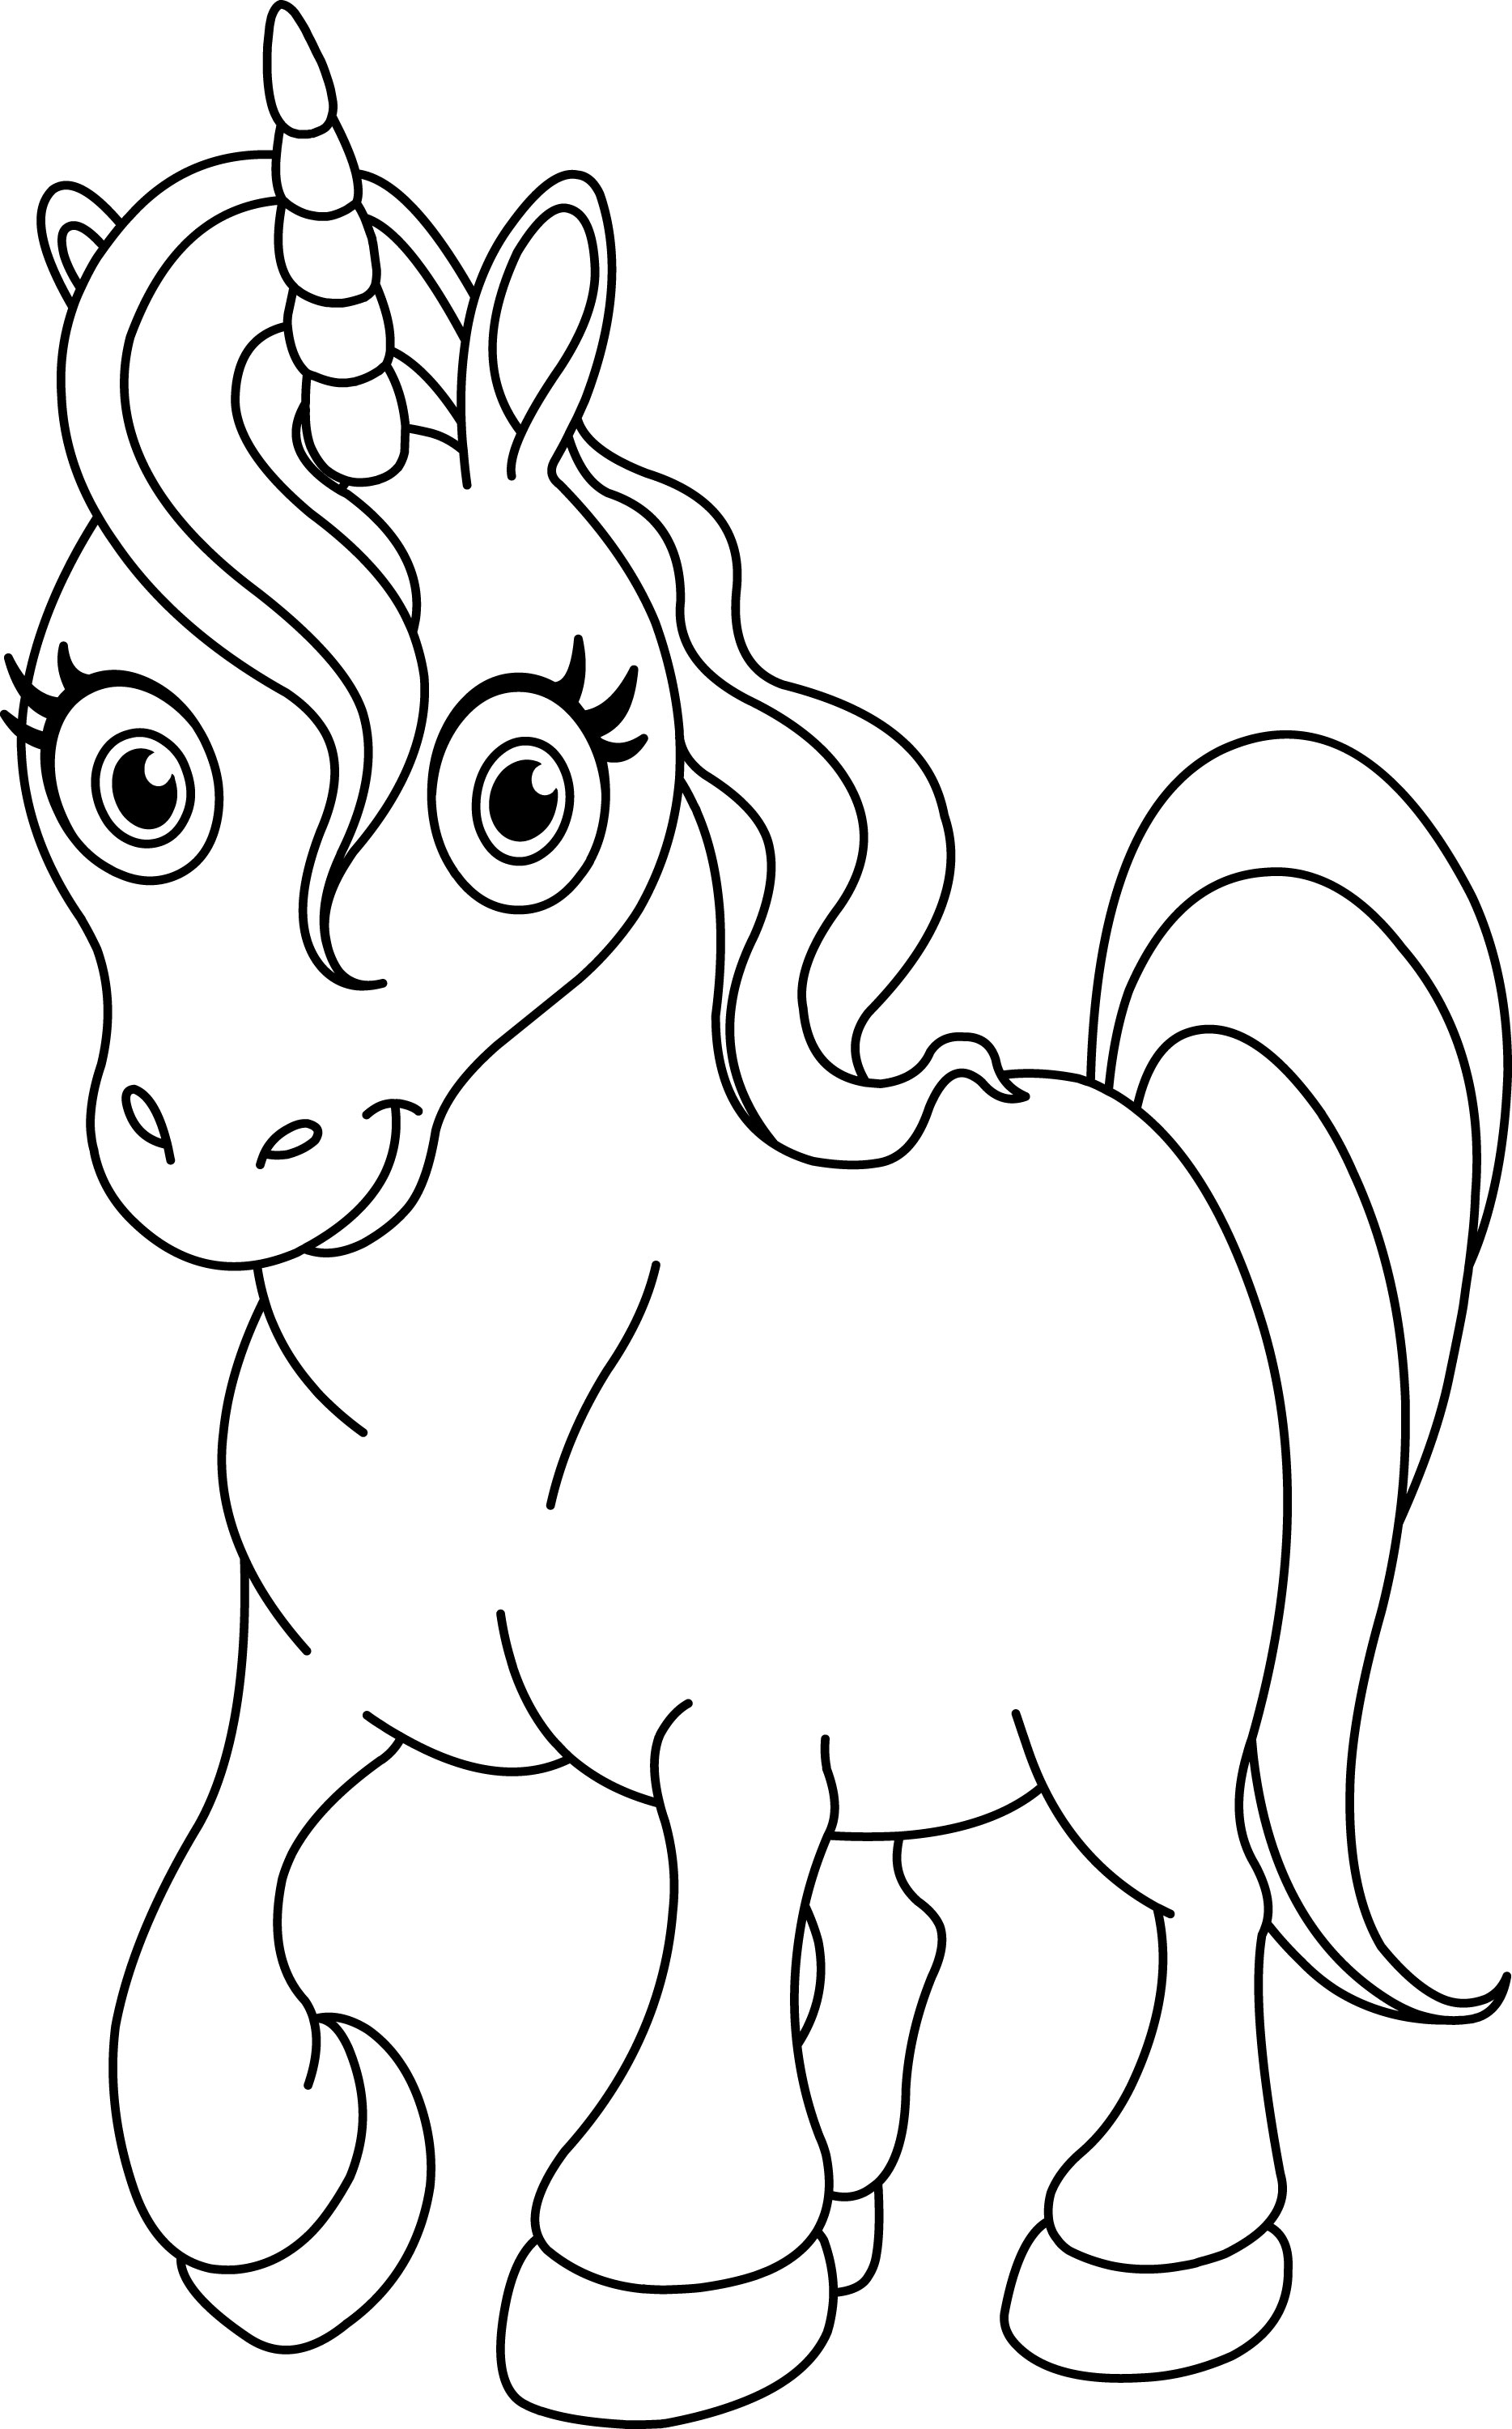 coloring unicorn kids drawing unicorn coloring pages to download and print for free drawing kids unicorn coloring